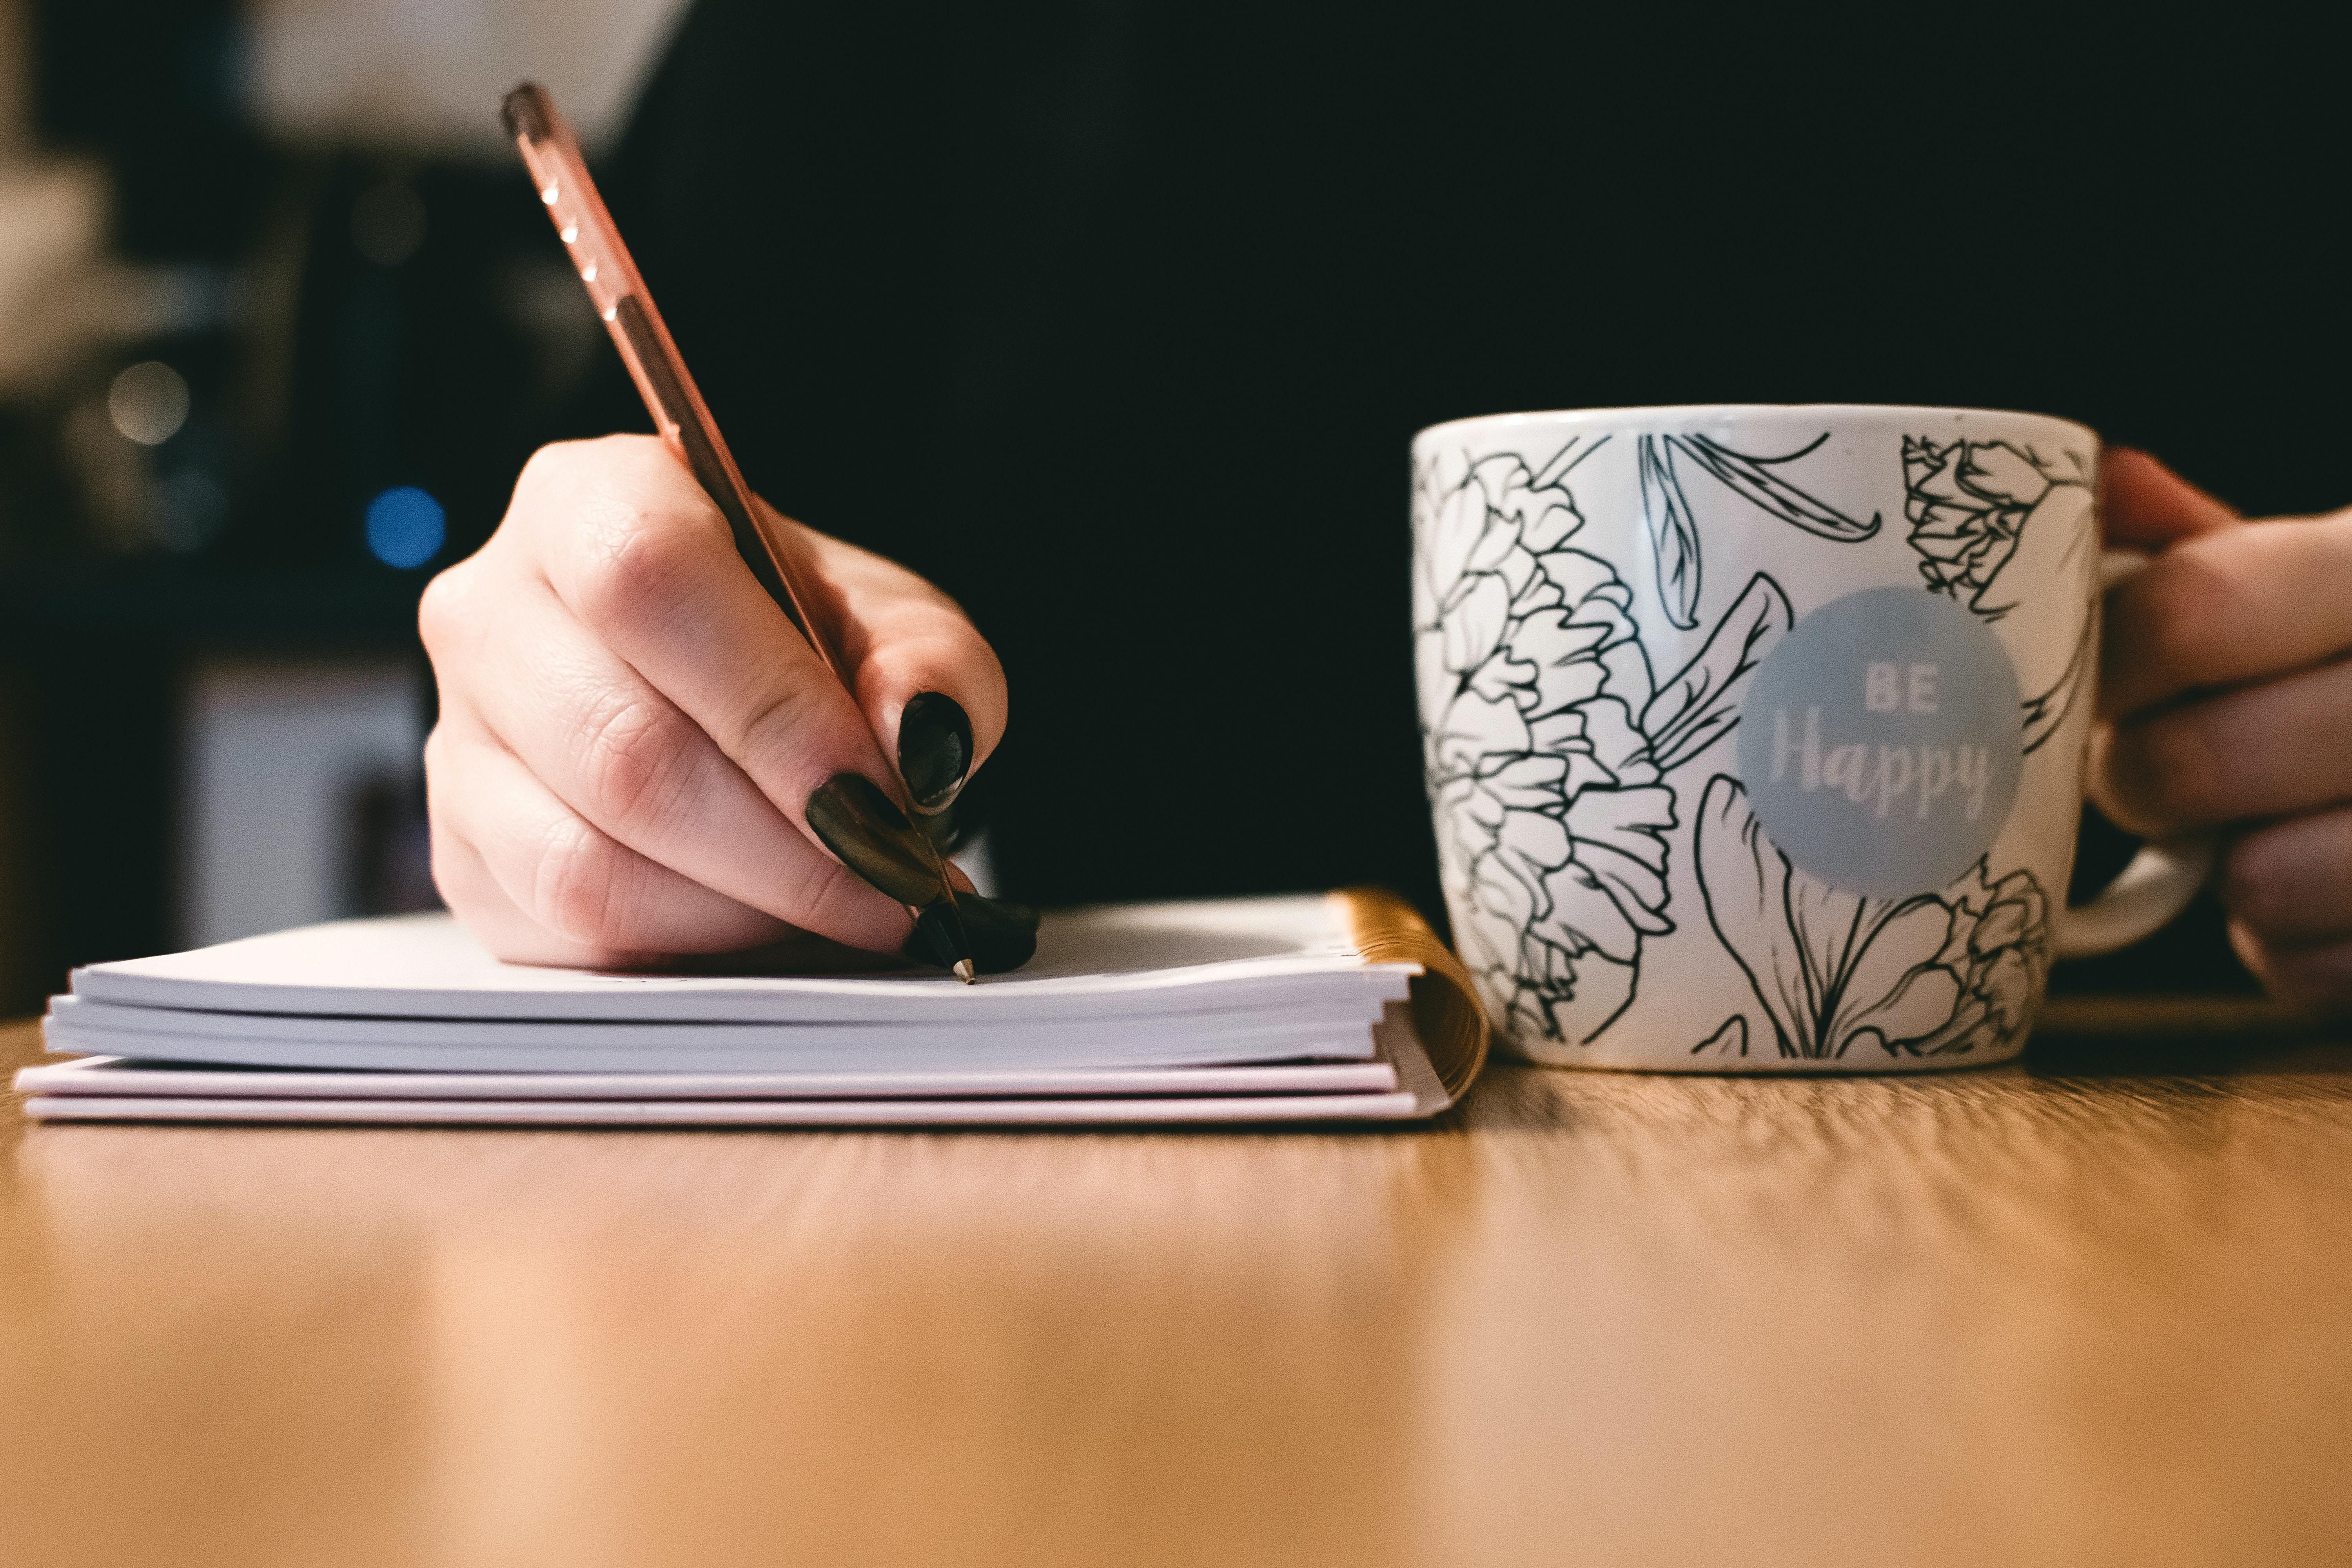 A closeup of a woman's hand writing in a notebook next to a coffee mug.